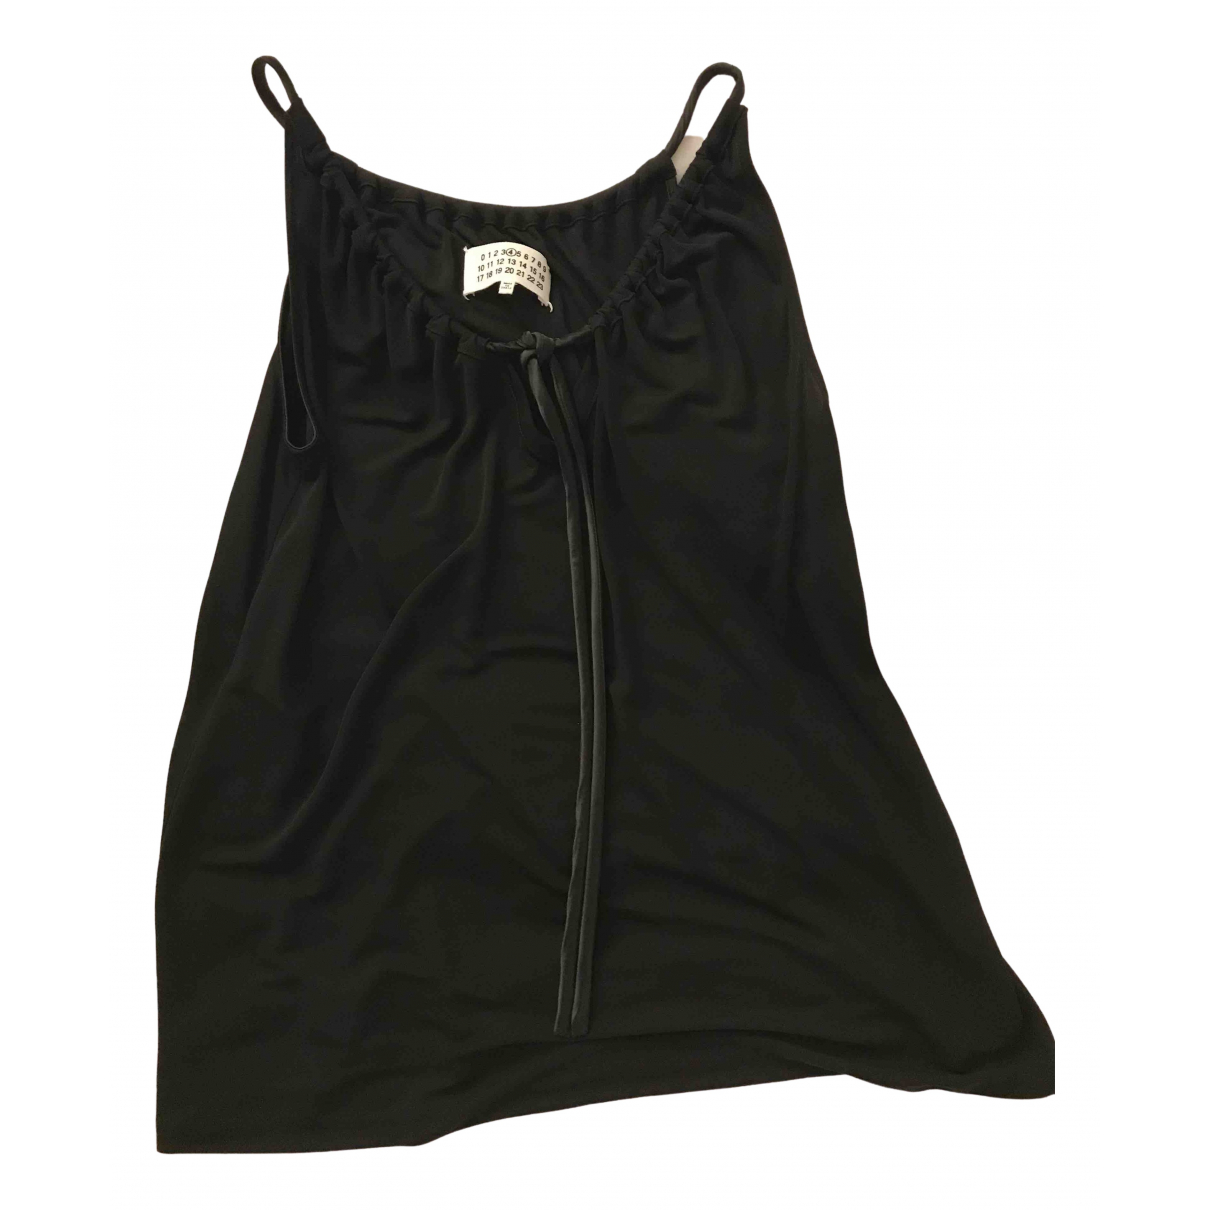 Maison Martin Margiela \N Black  top for Women 40 IT